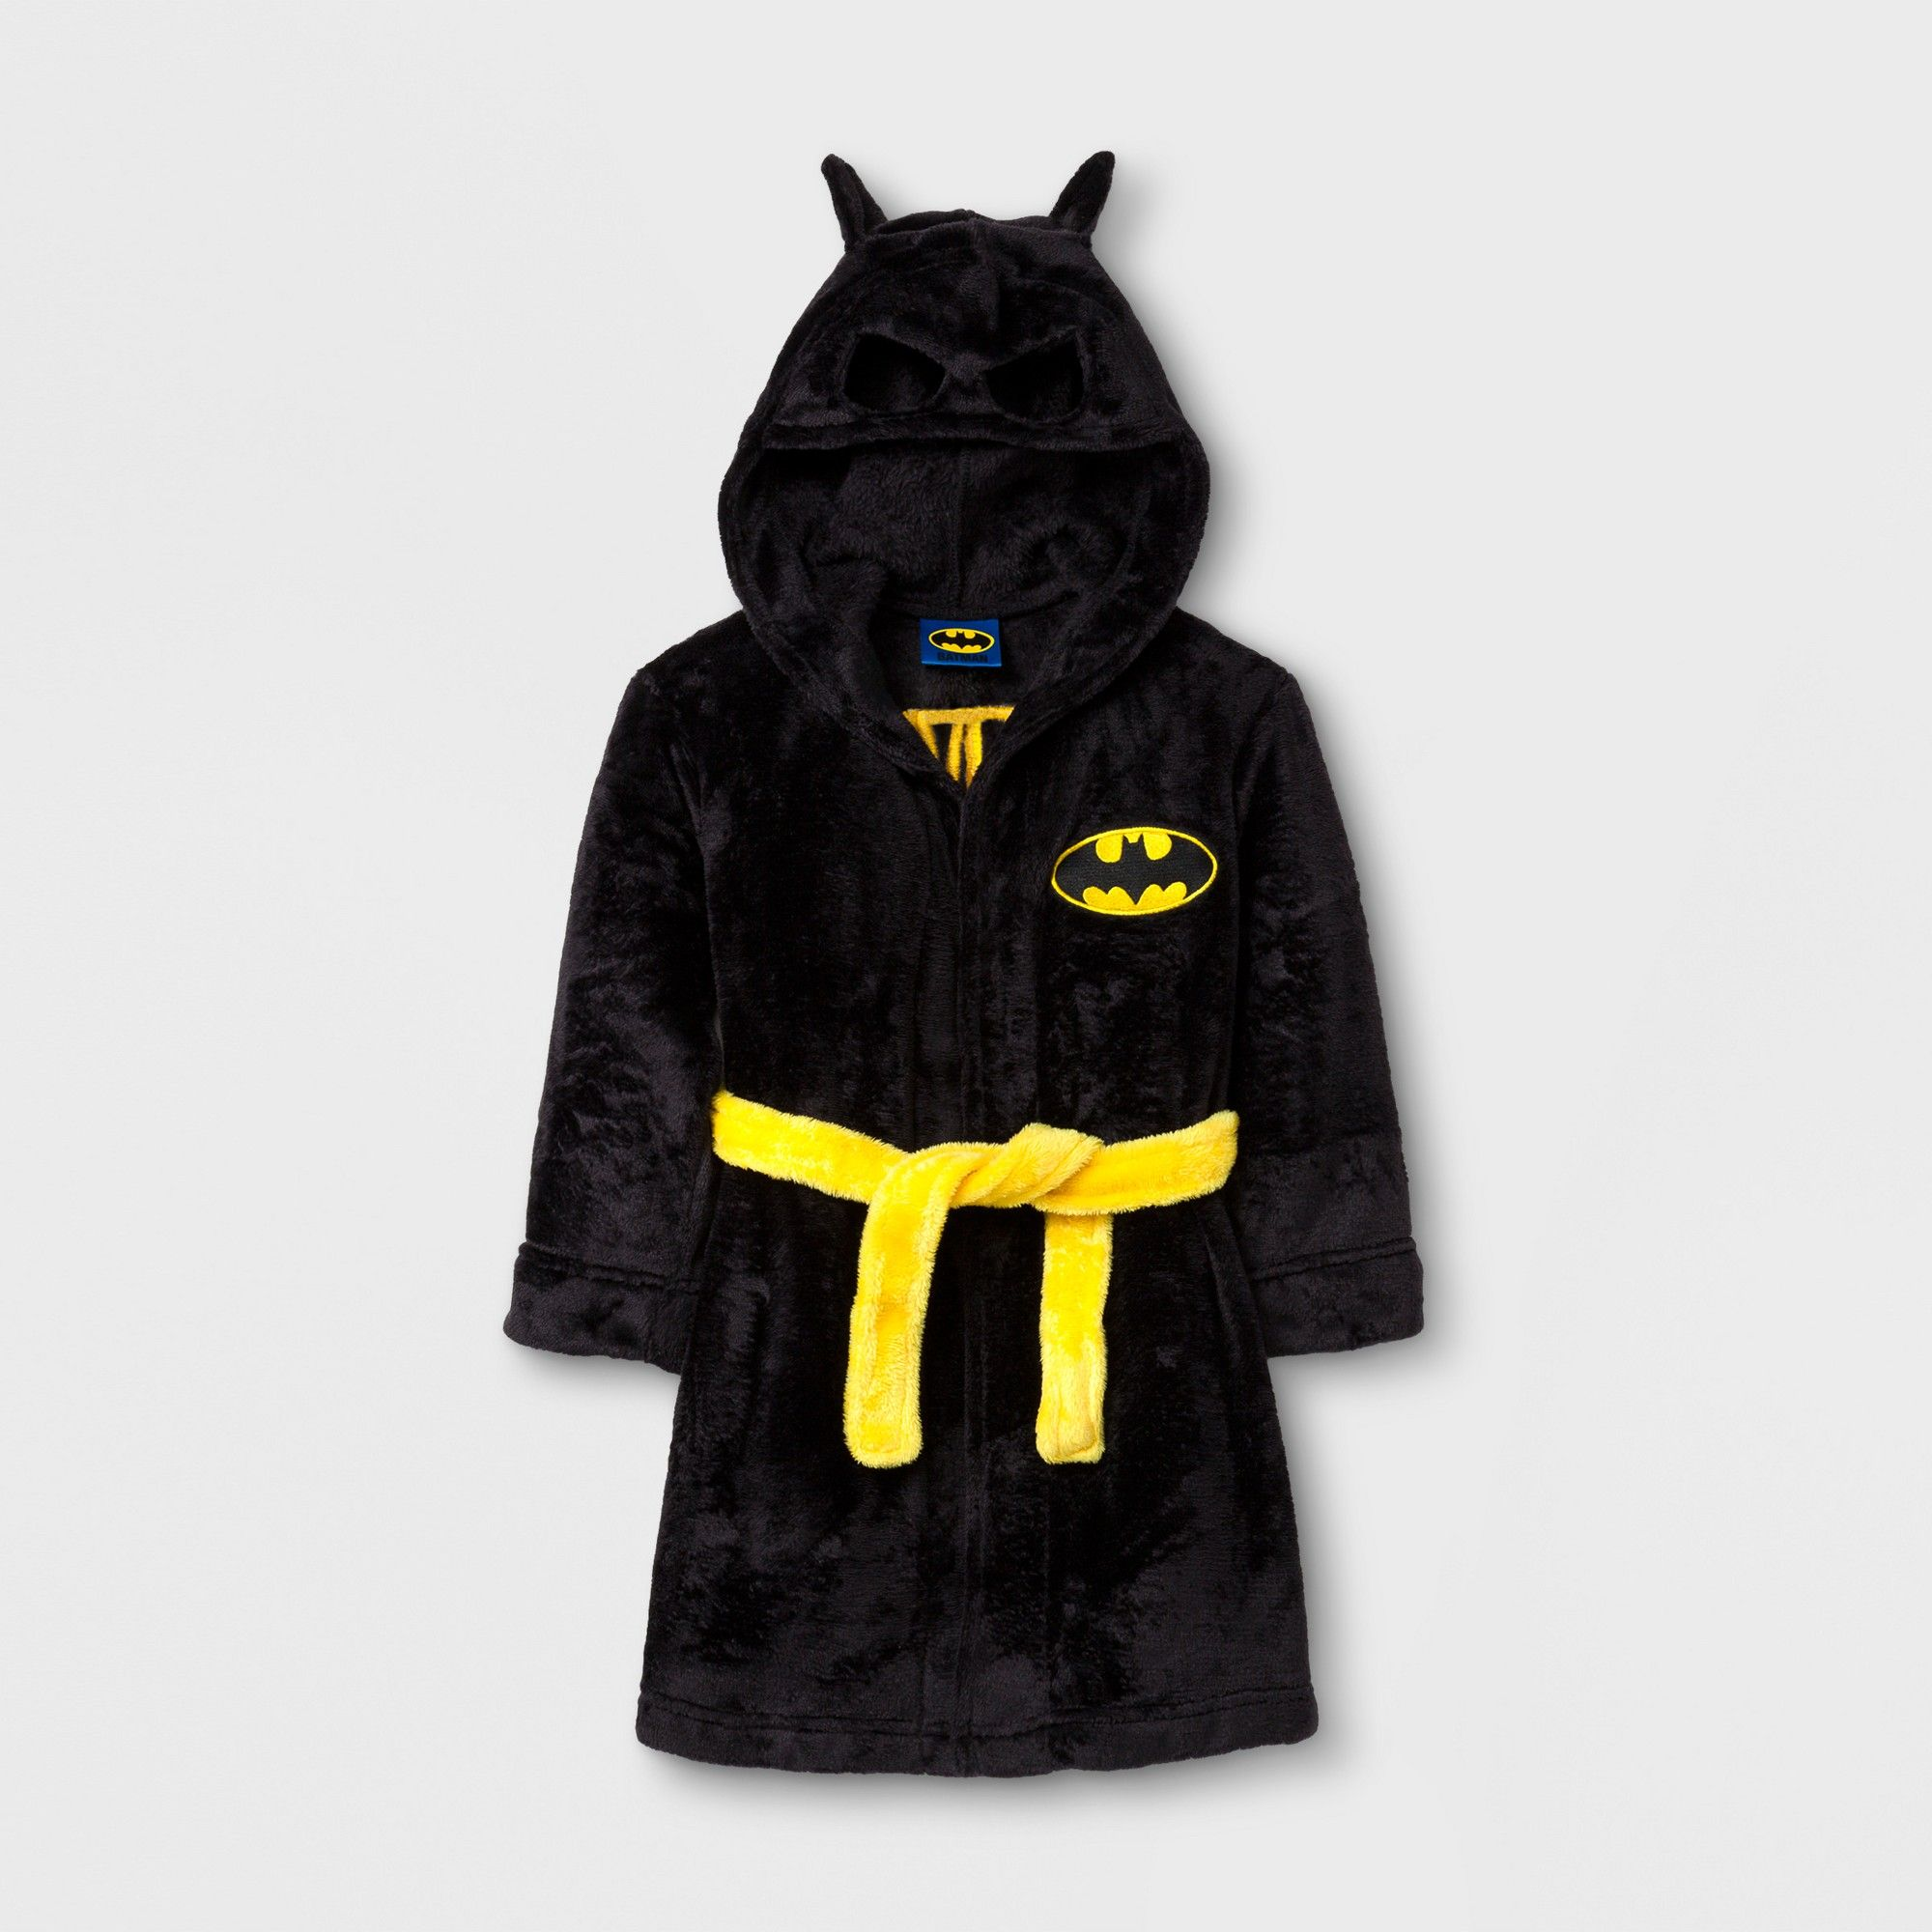 Toddler Boys\' DC Comics Batman Robe - Black 2T | Products ...